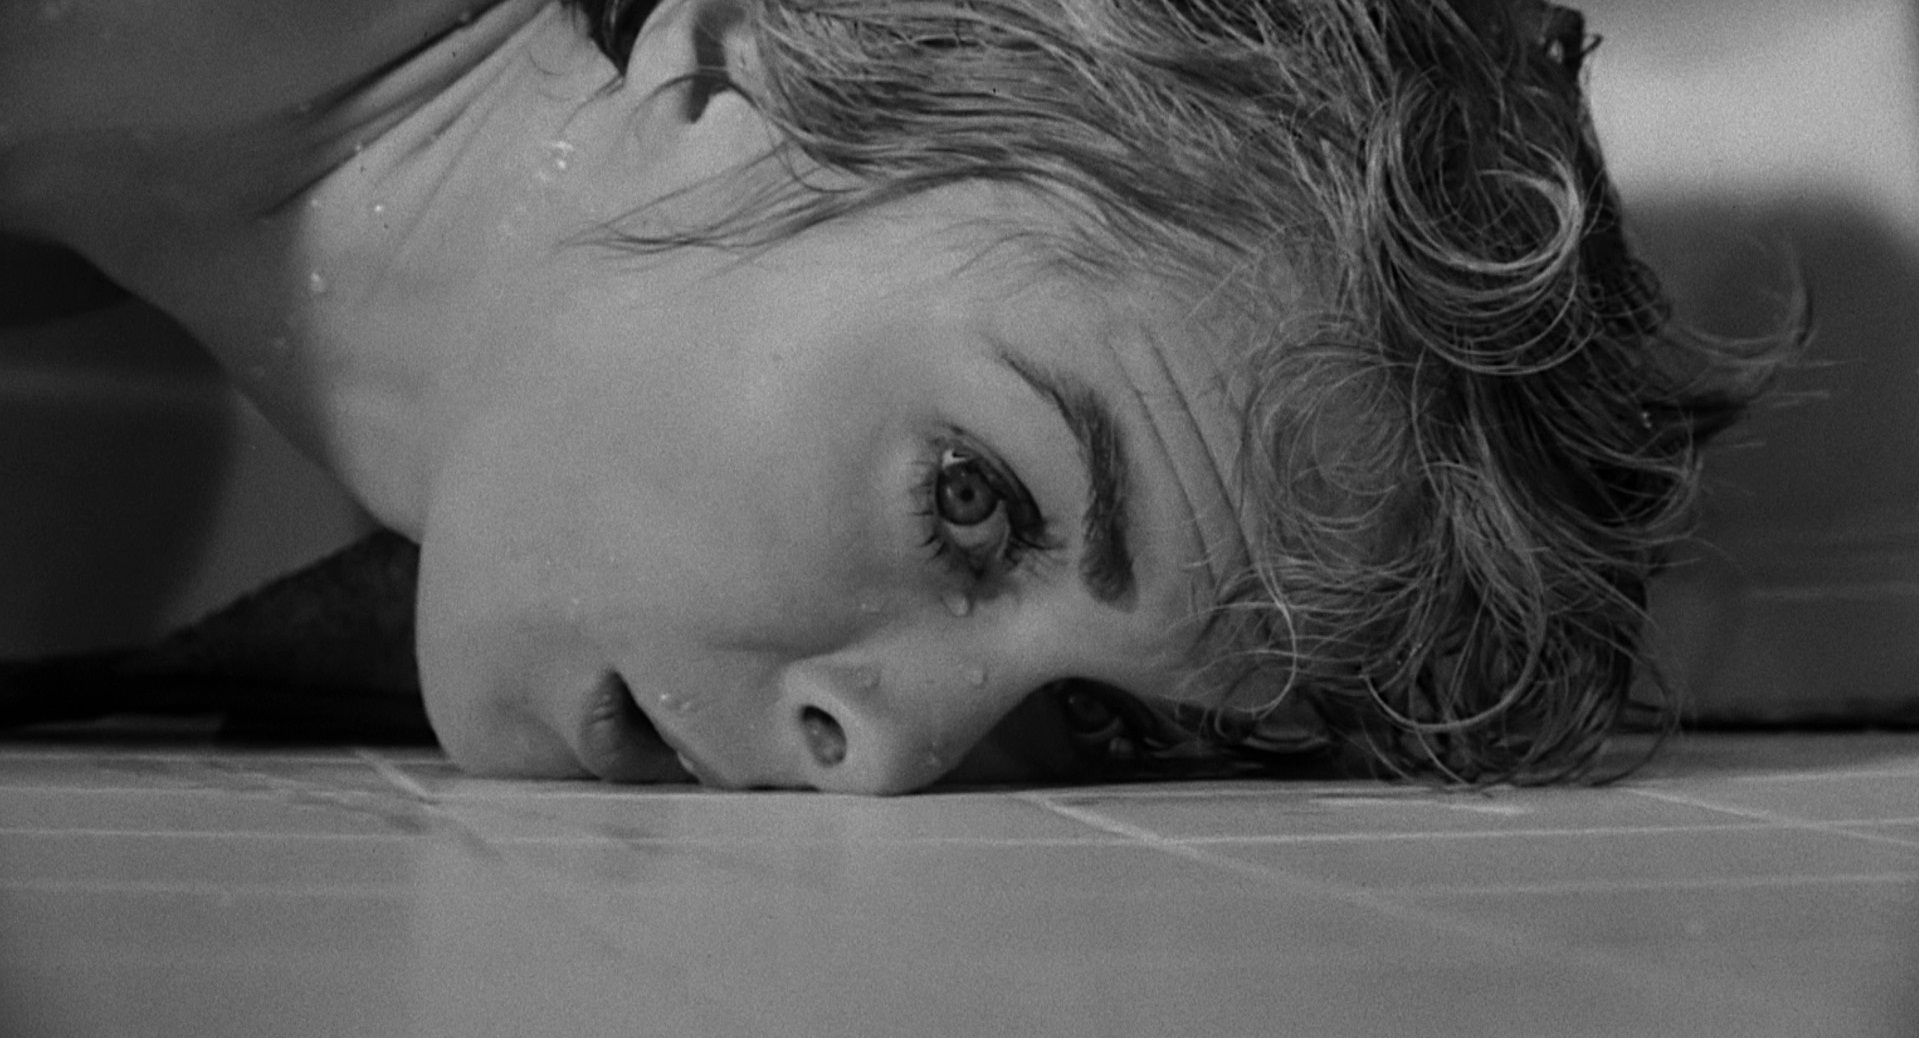 """an analysis of the opening sequence in psycho by alfred hitchcock The opening shot is an aerial shot from the sky,  film analysis of alfred hitchcock's """"psycho"""" introduction """"psycho"""" (1960) is based on a novel of the ."""